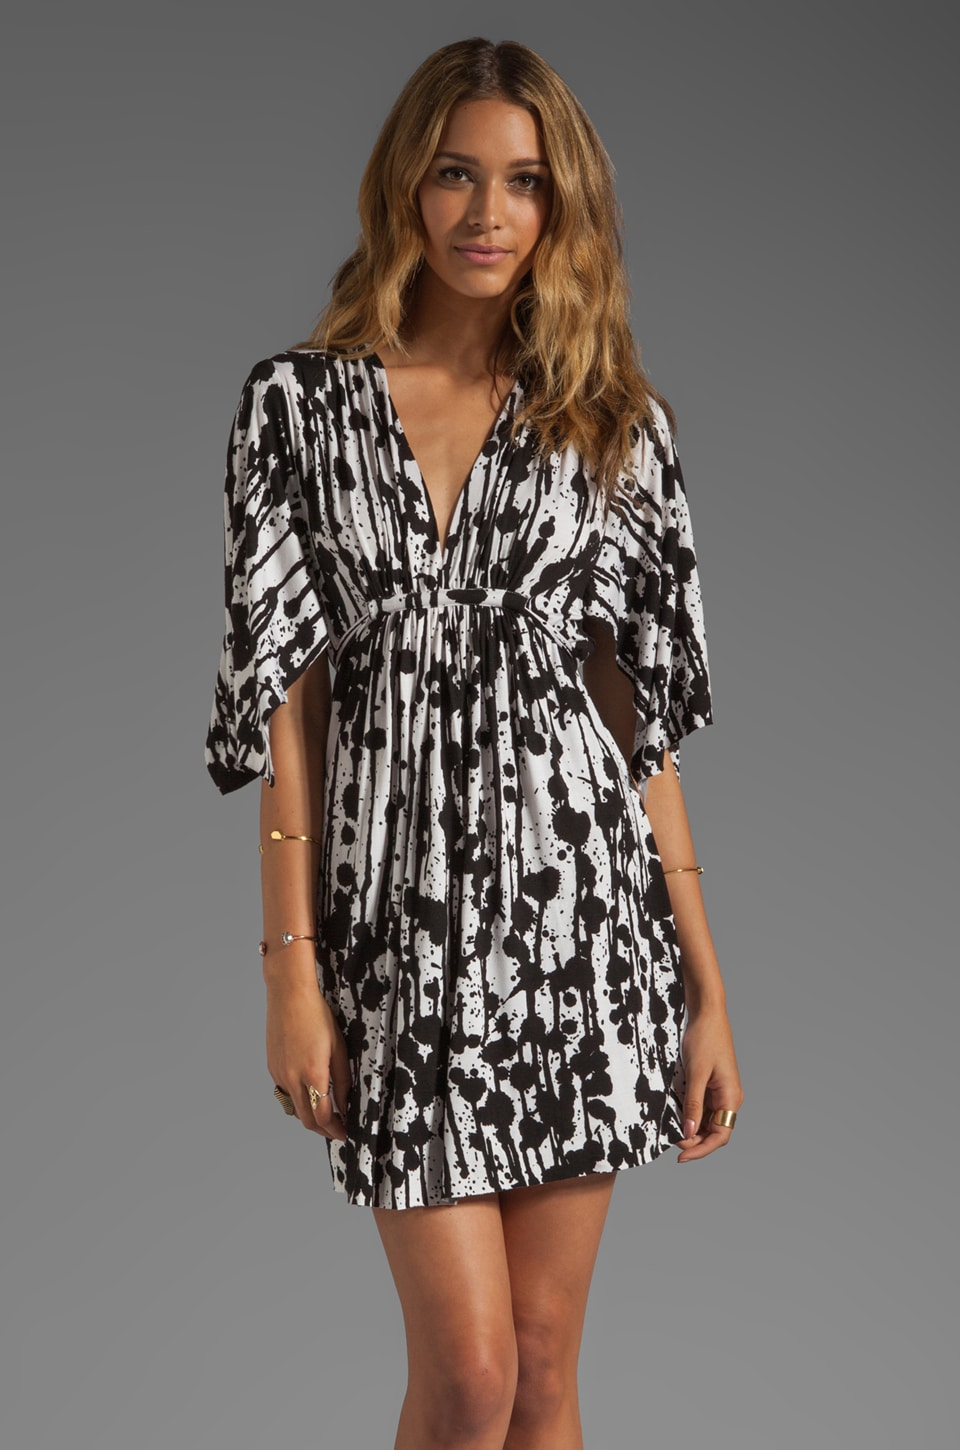 Rachel Pally Mini Caftan Dress in Black Splatter